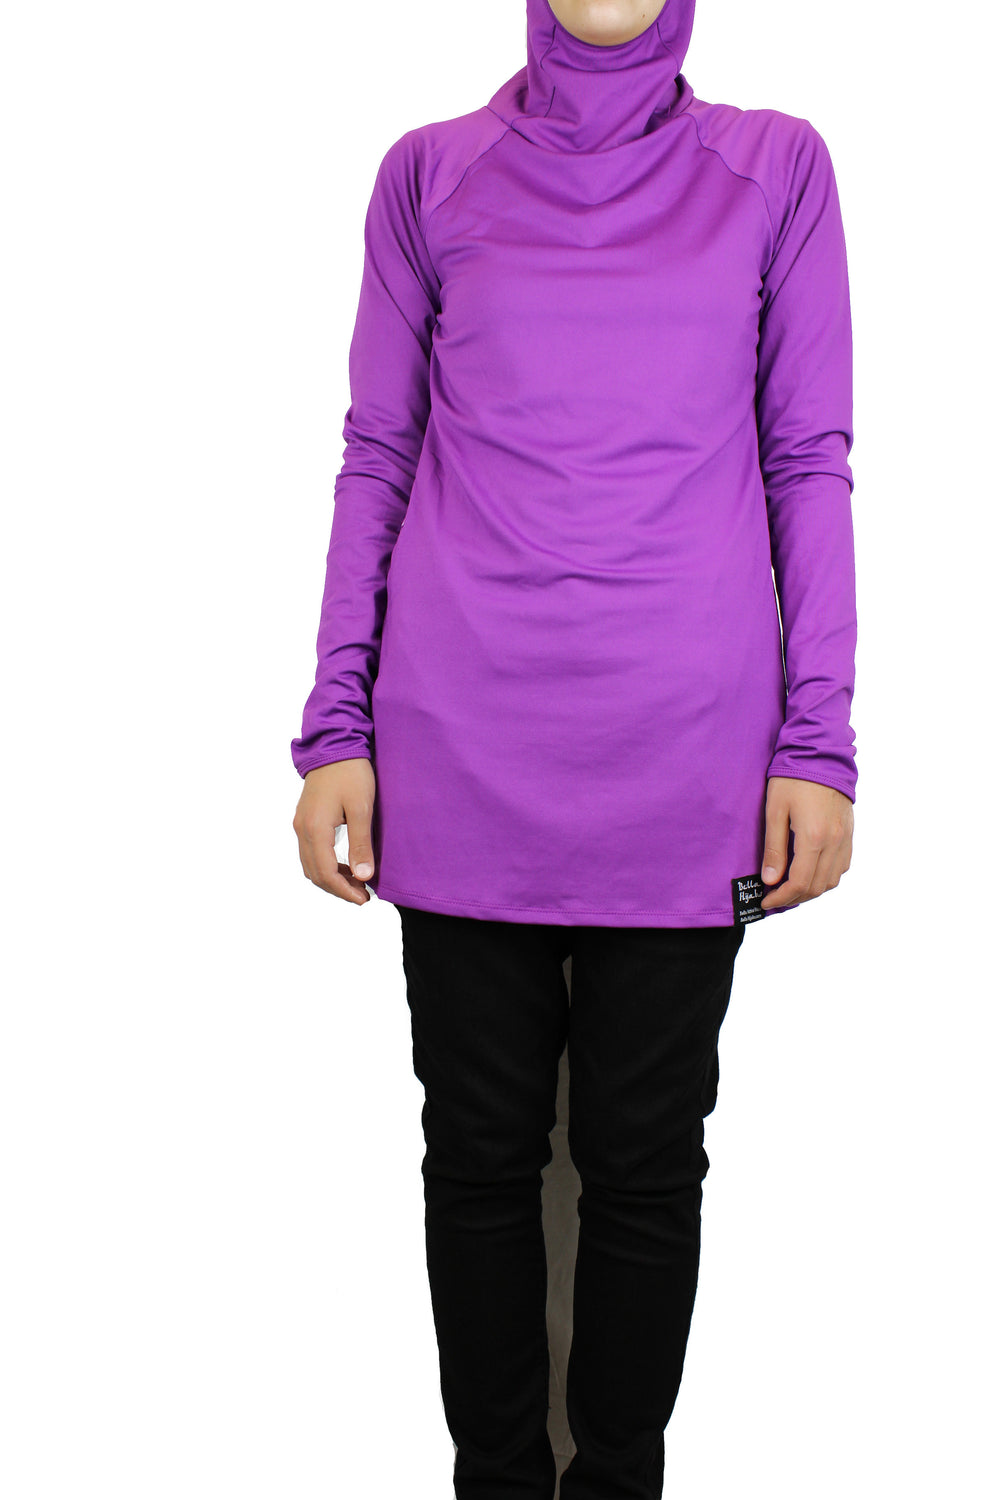 long sleeved workout top in purple with a hijab attached